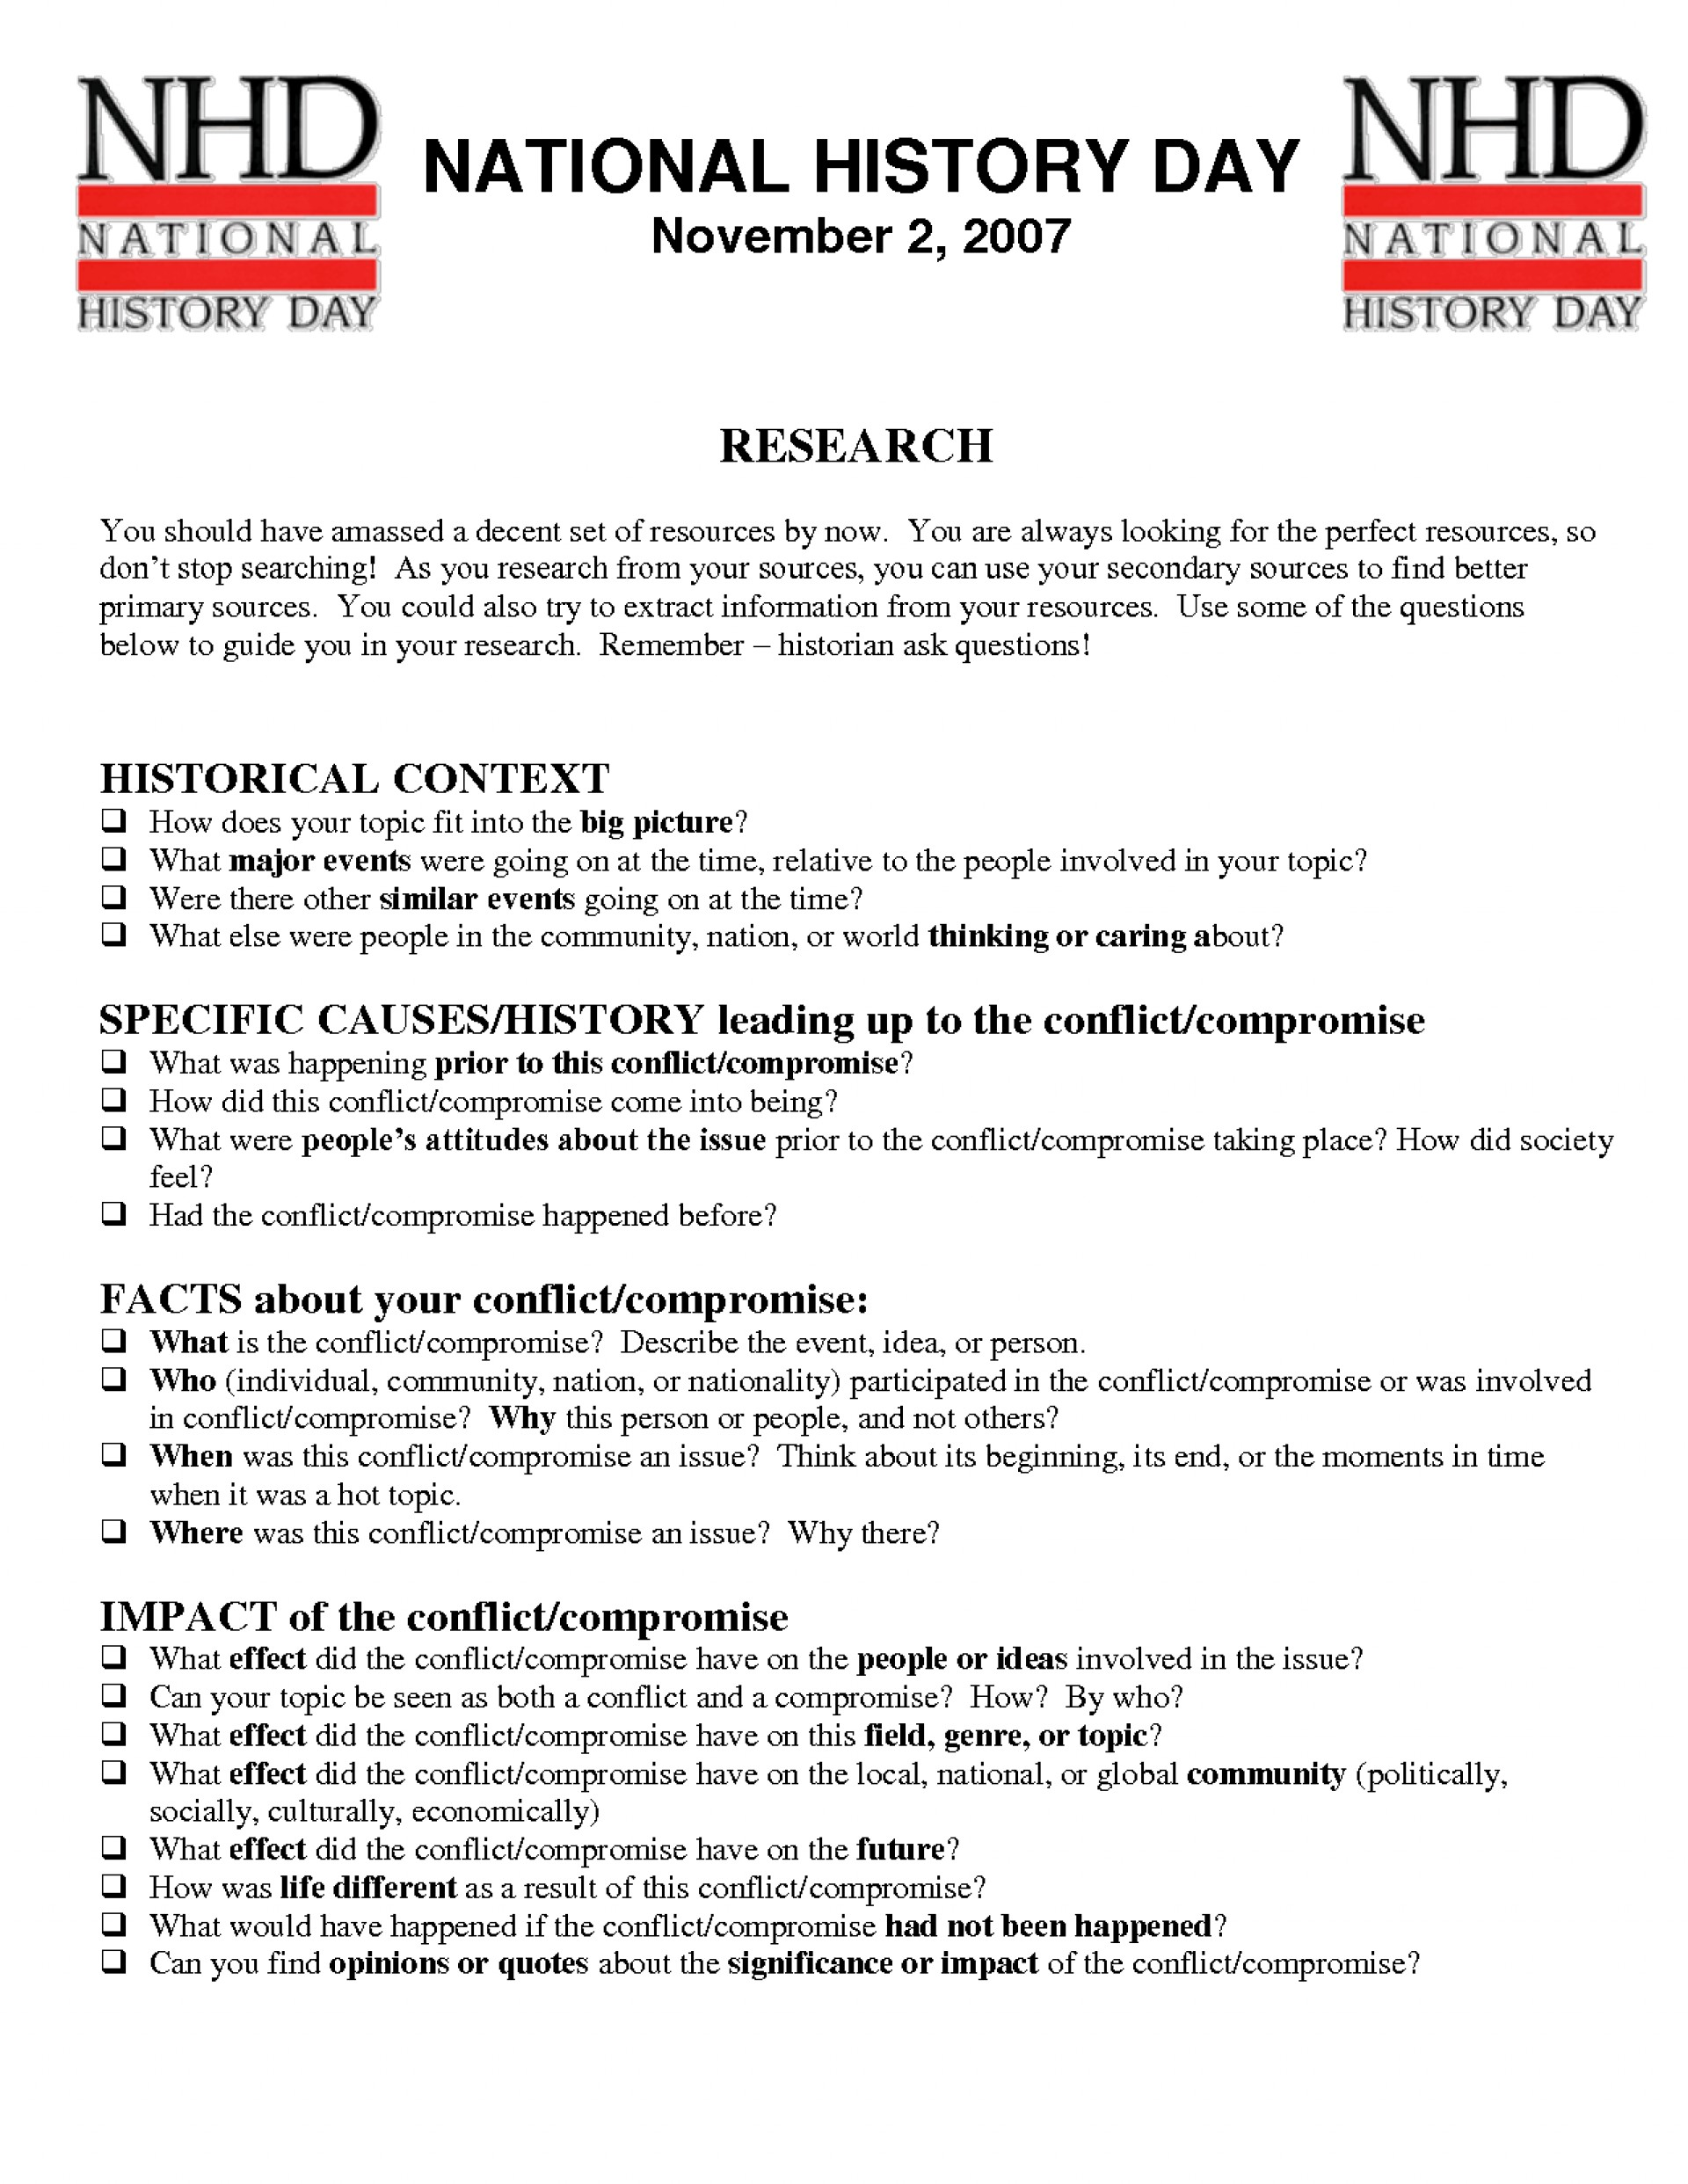 007 College Essays Application Example Of Examples Process Essay Topics L Marvelous For Middle School Funny 1920